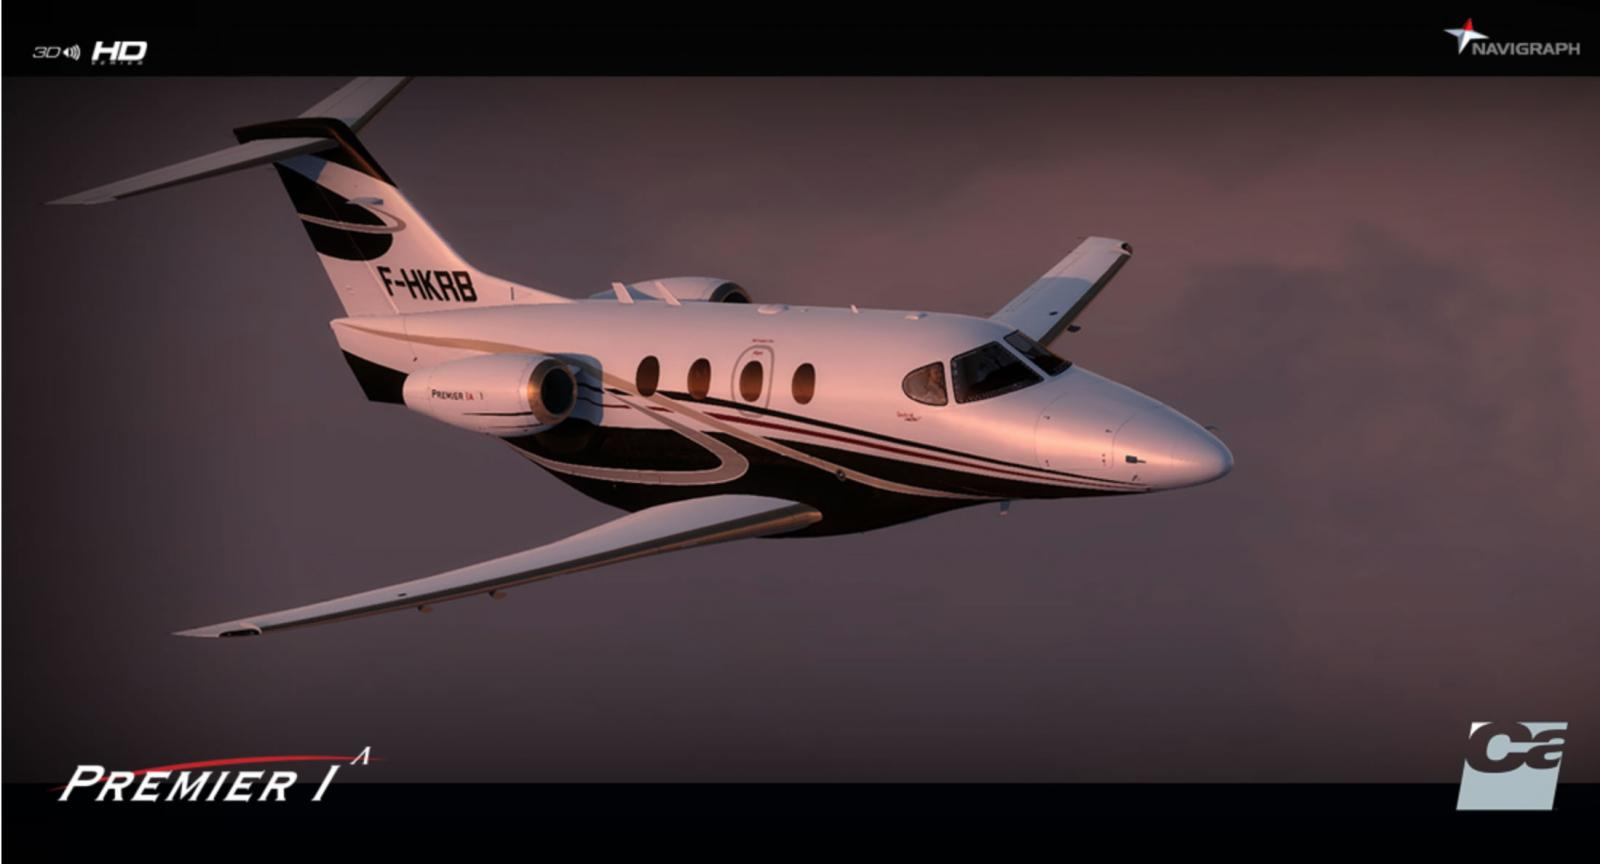 Where Are The HD Business Jets? - General X-Plane Forum - X-Plane